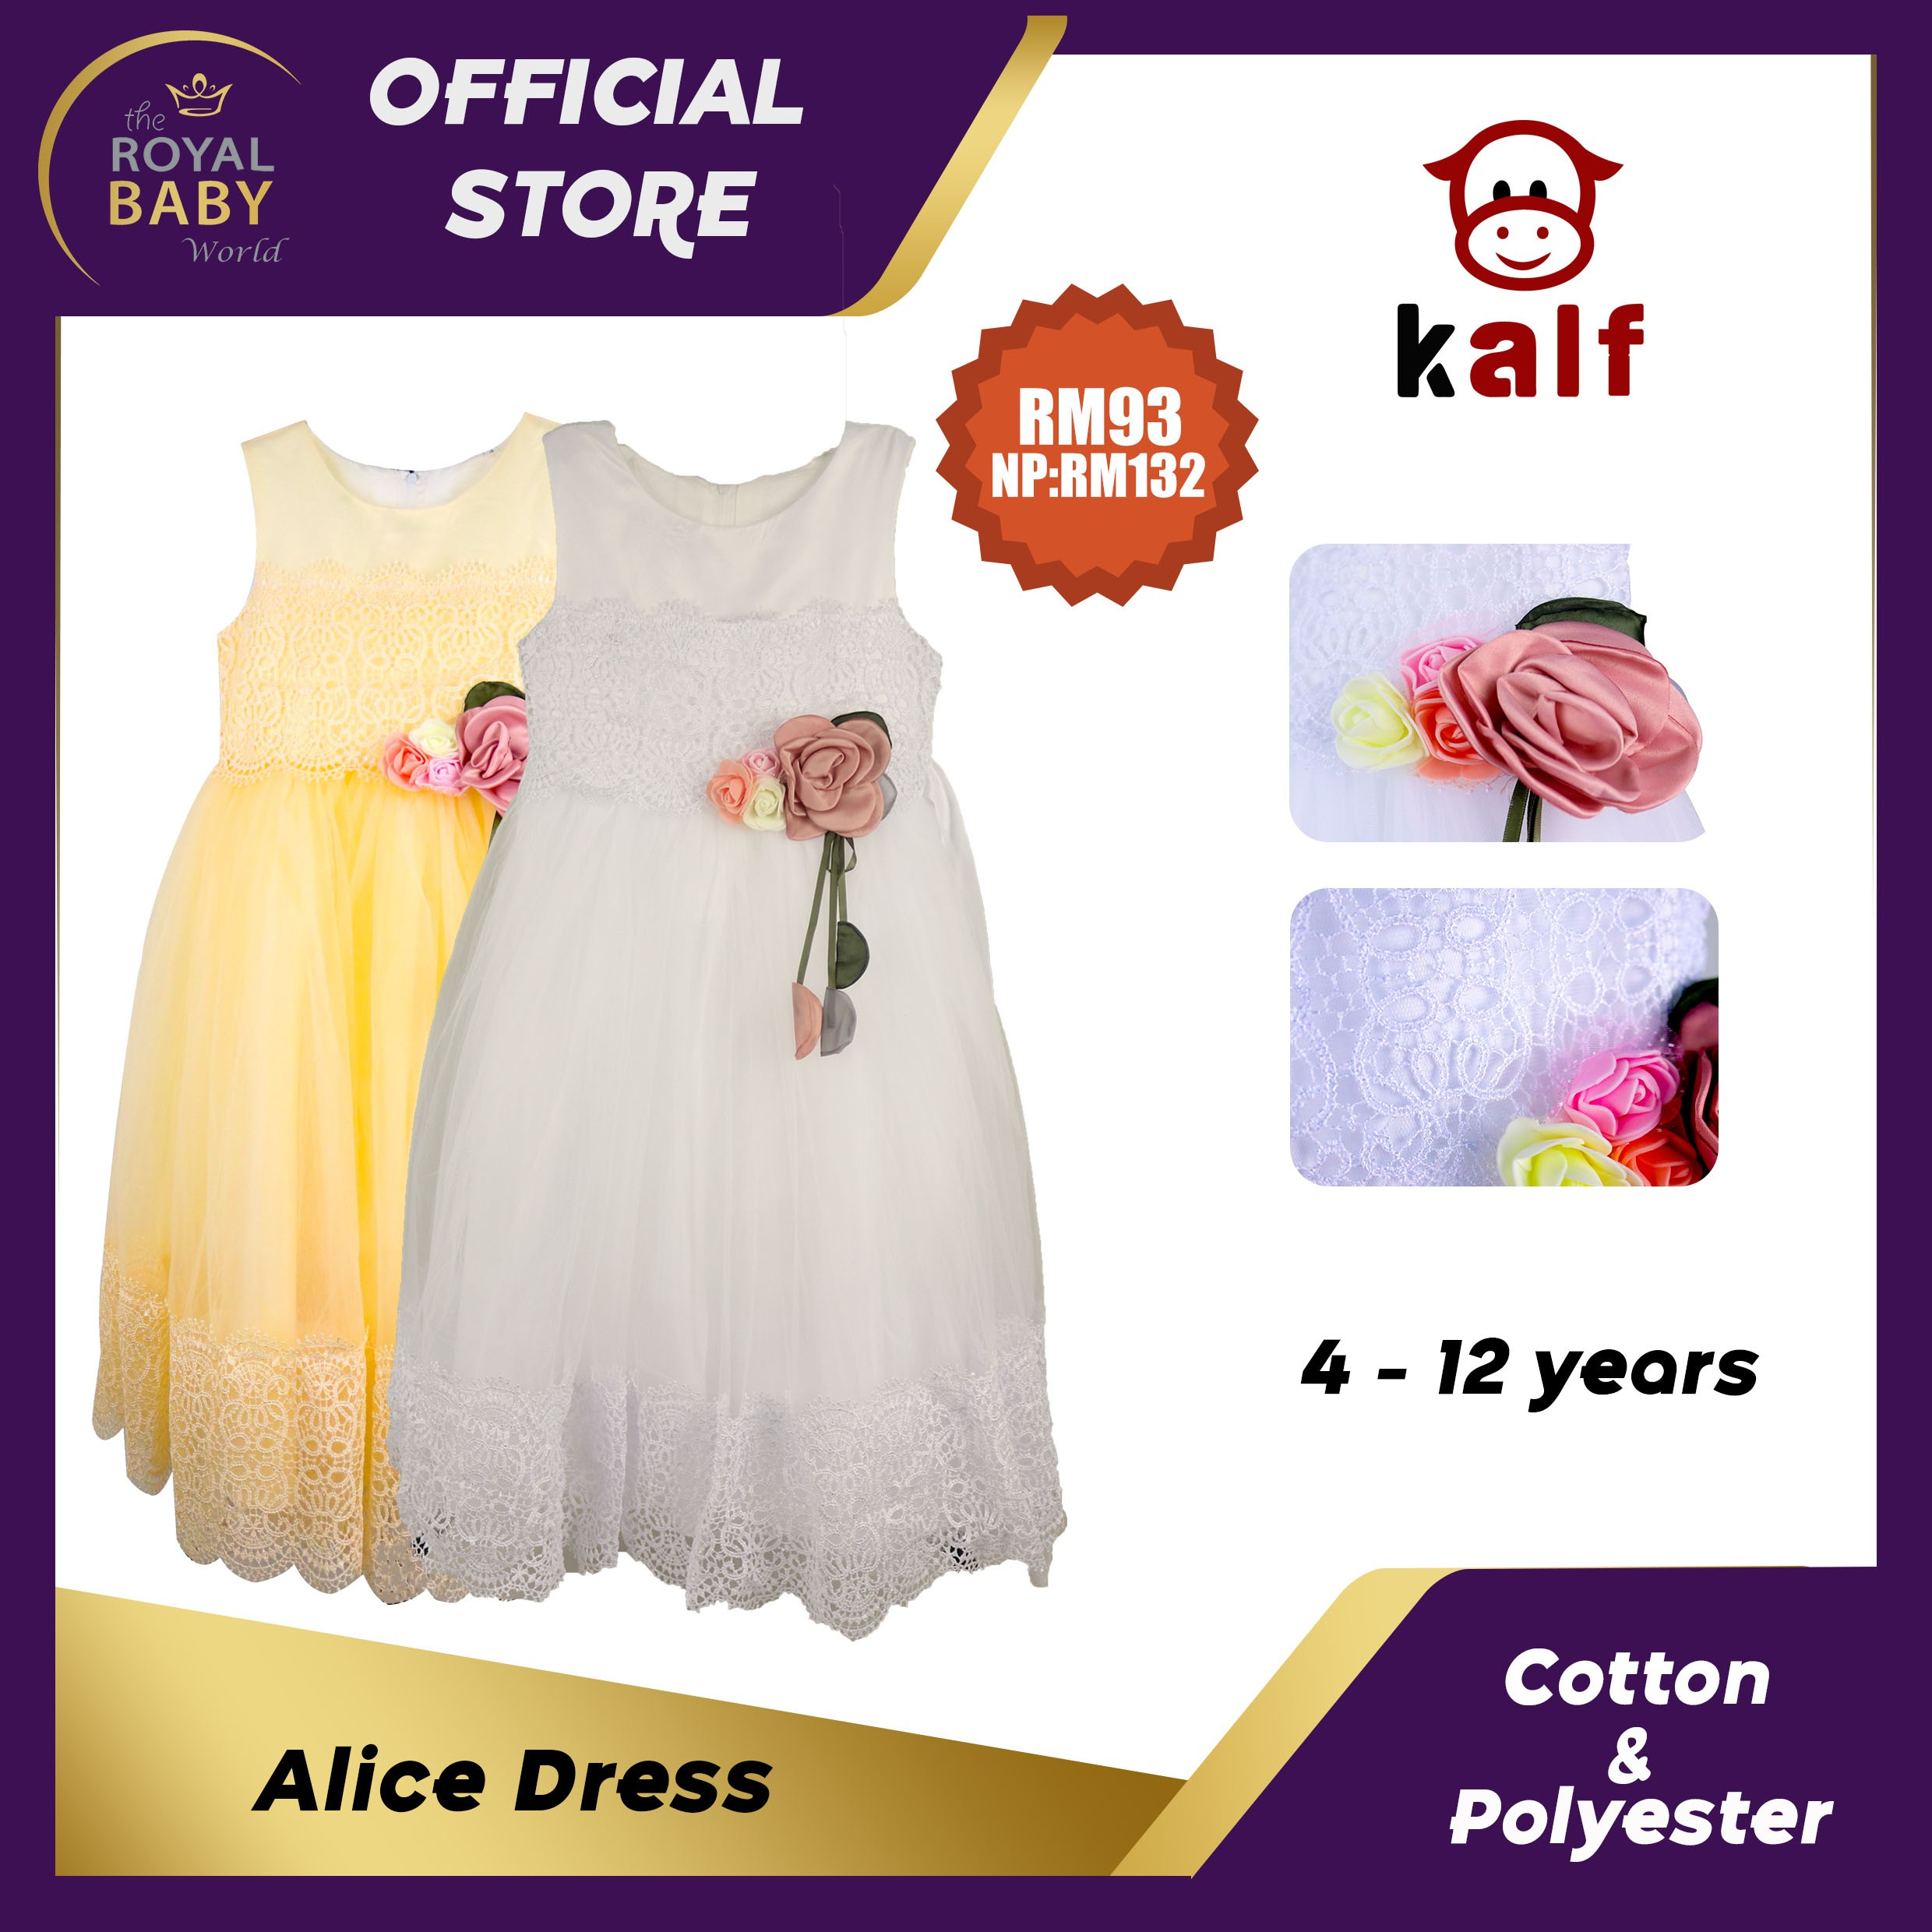 Alice Dress Girl Dress Fit From 4 Up To 12 Years Old For Girls